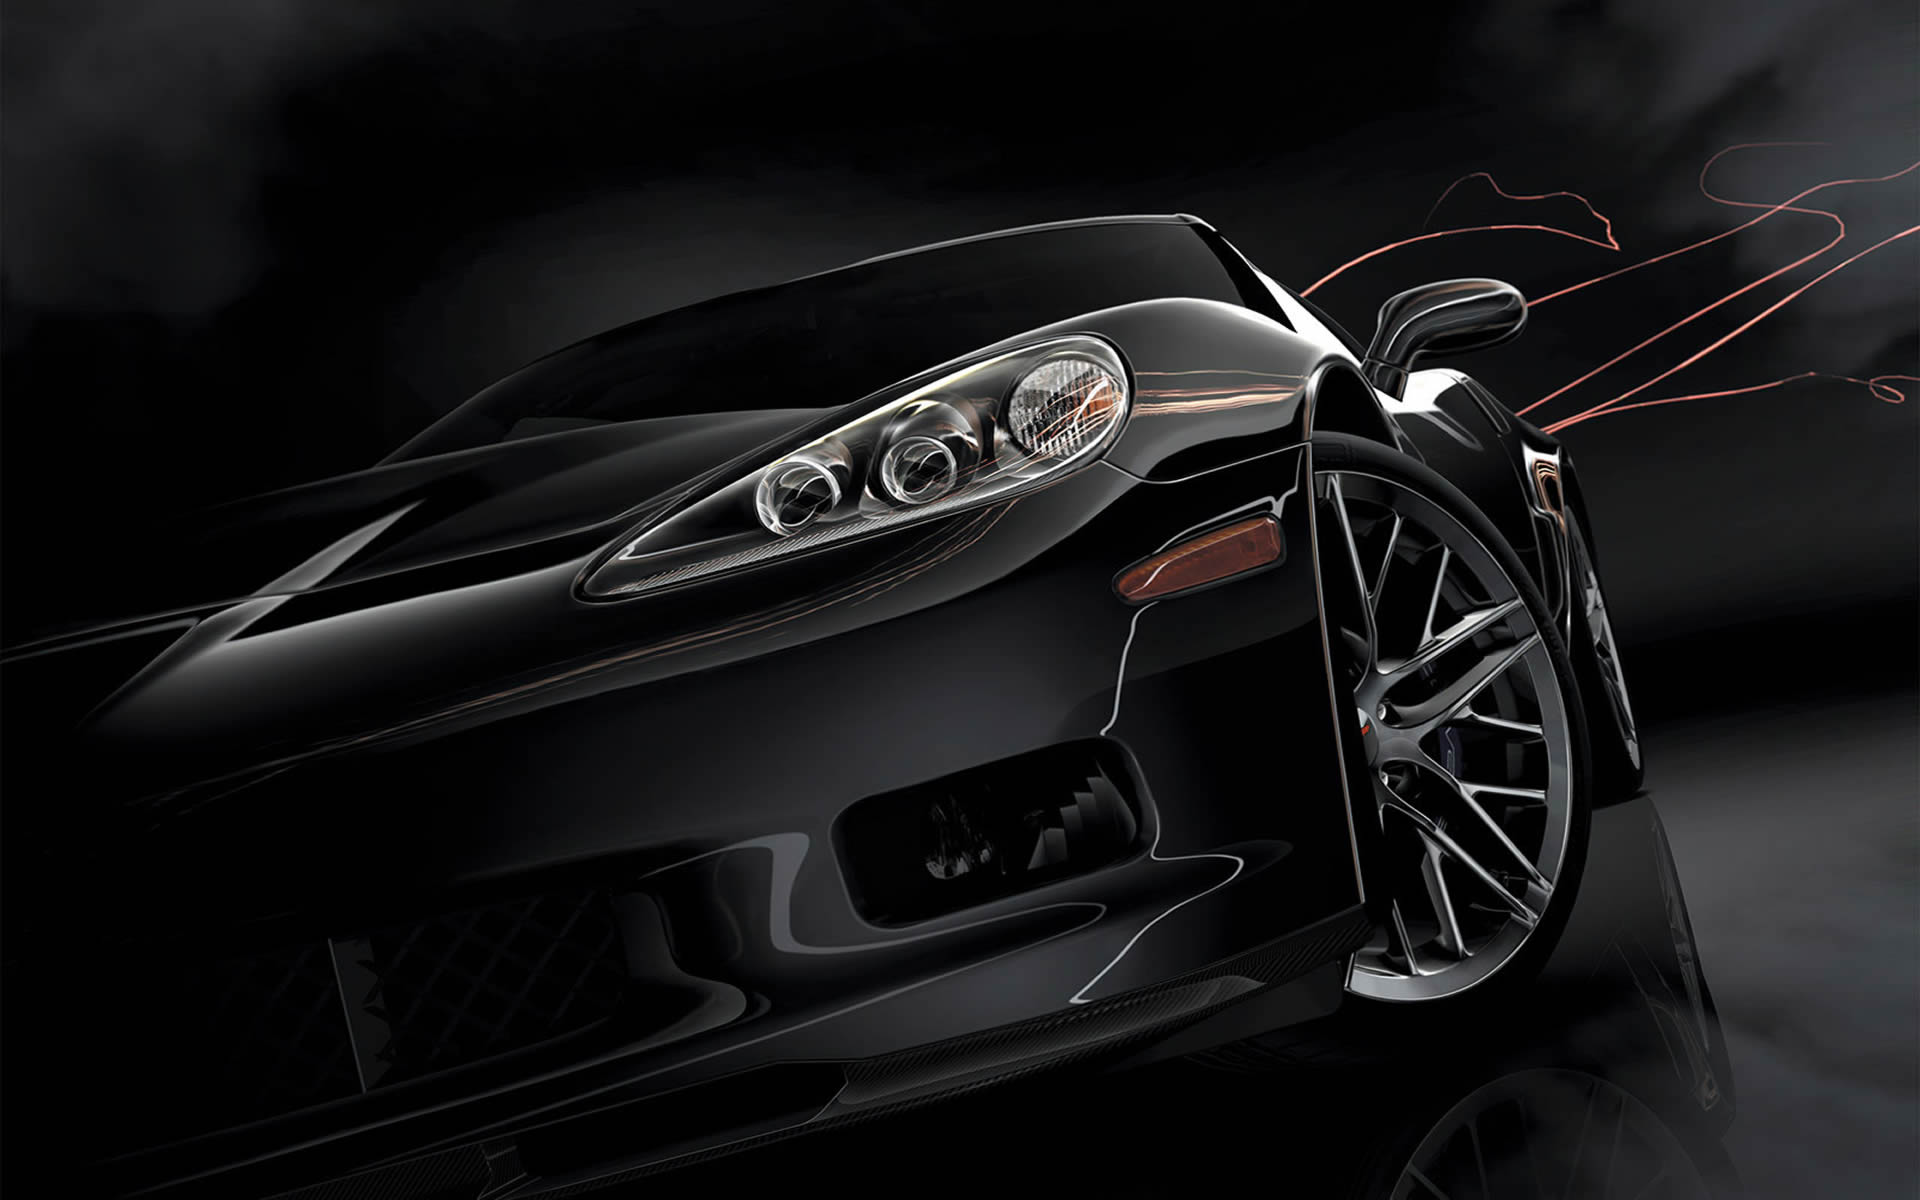 Black Car  Racing Games Wallpaper Image featuring Gran Turismo 5